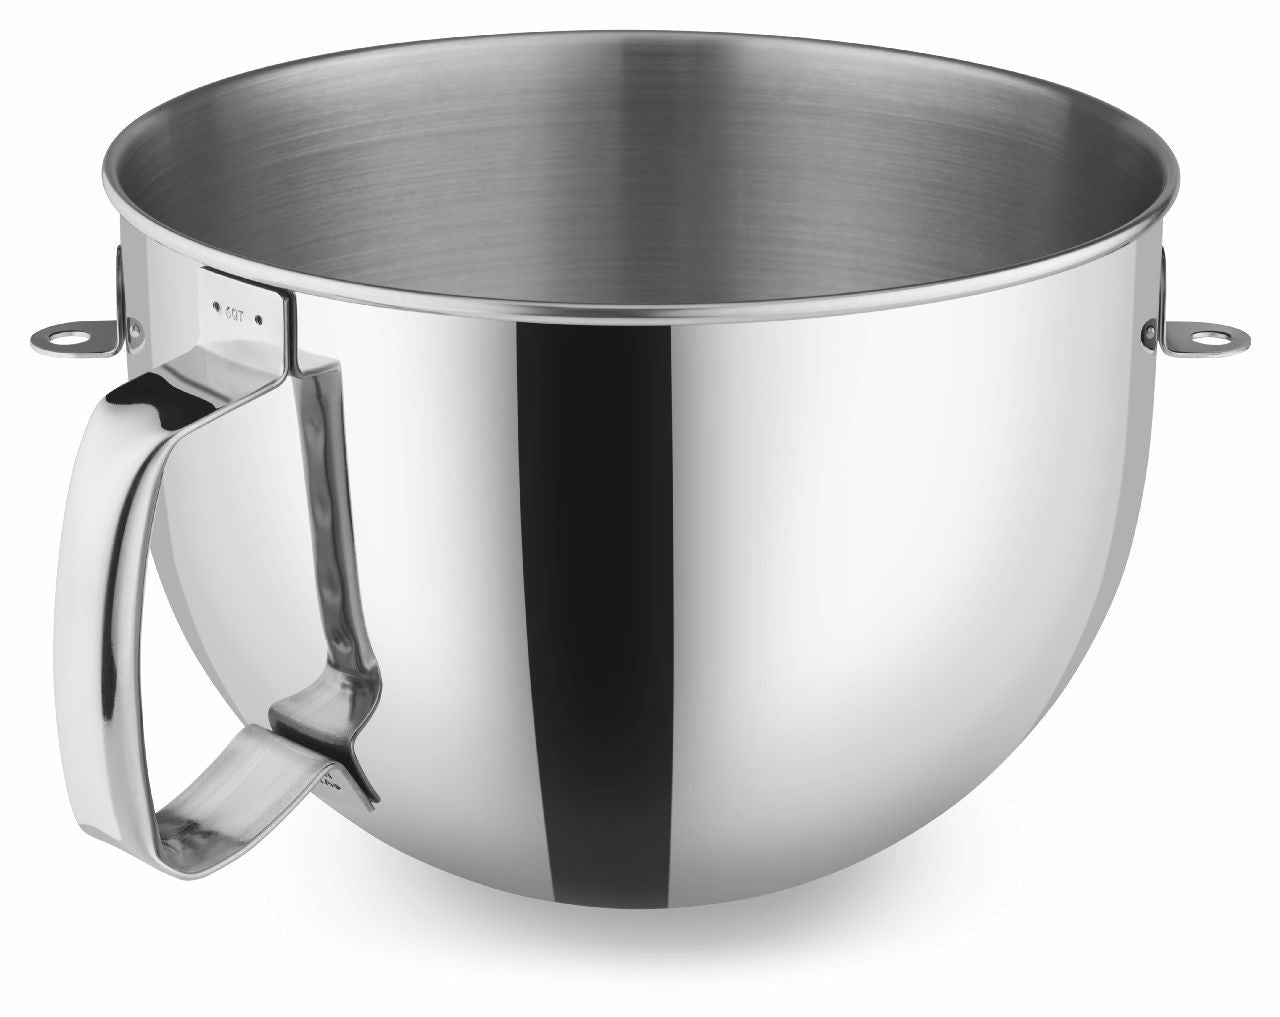 KitchenaidAid 6-Qt Bowl Polished Stainless Steel with Comfortable Handle KN2B6PEH